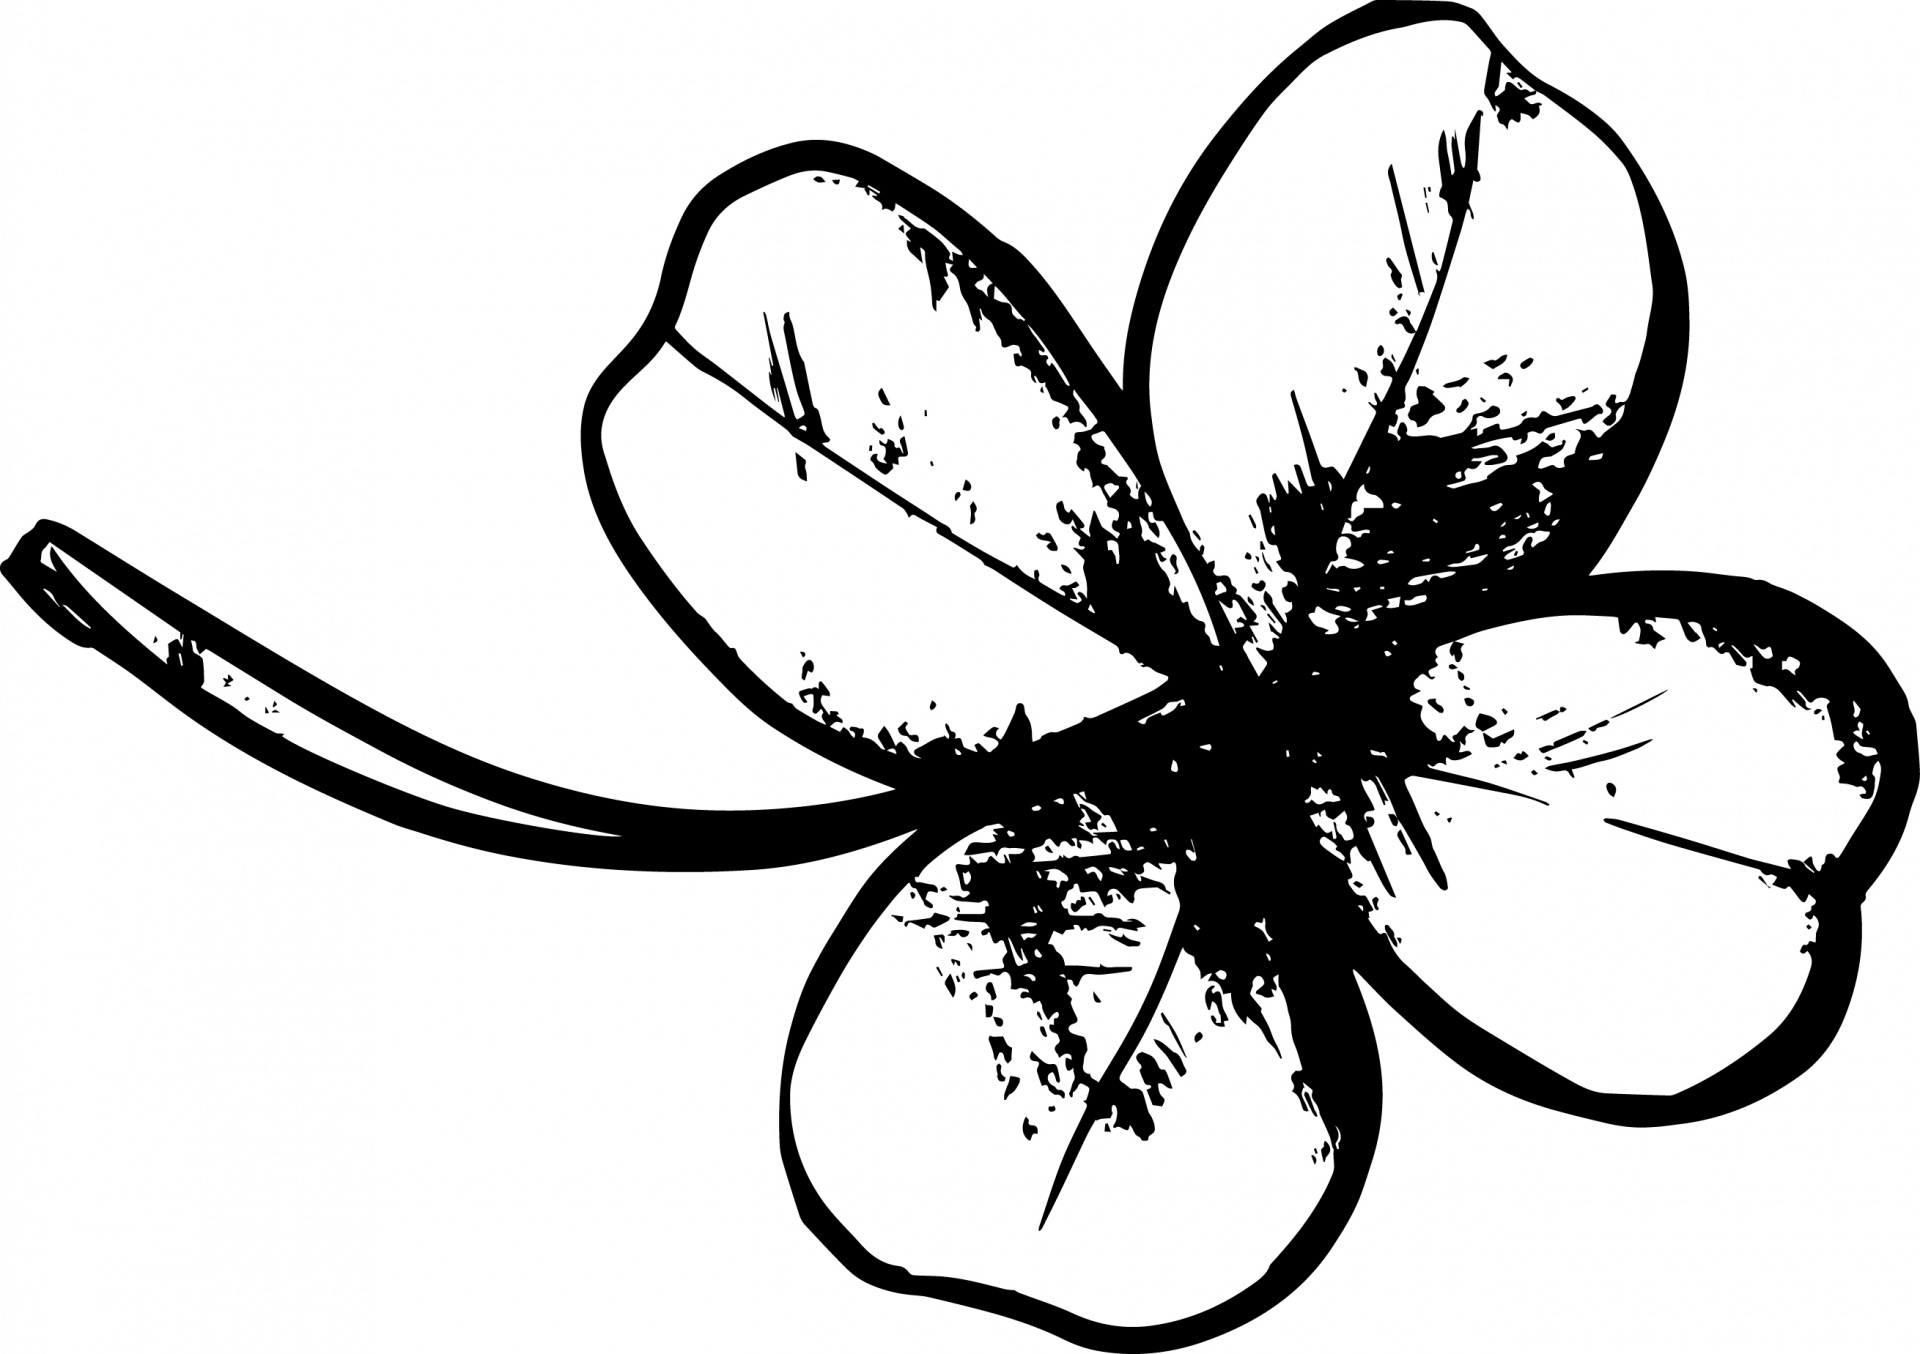 Four Leaf Clover Drawing Free Stock Photo